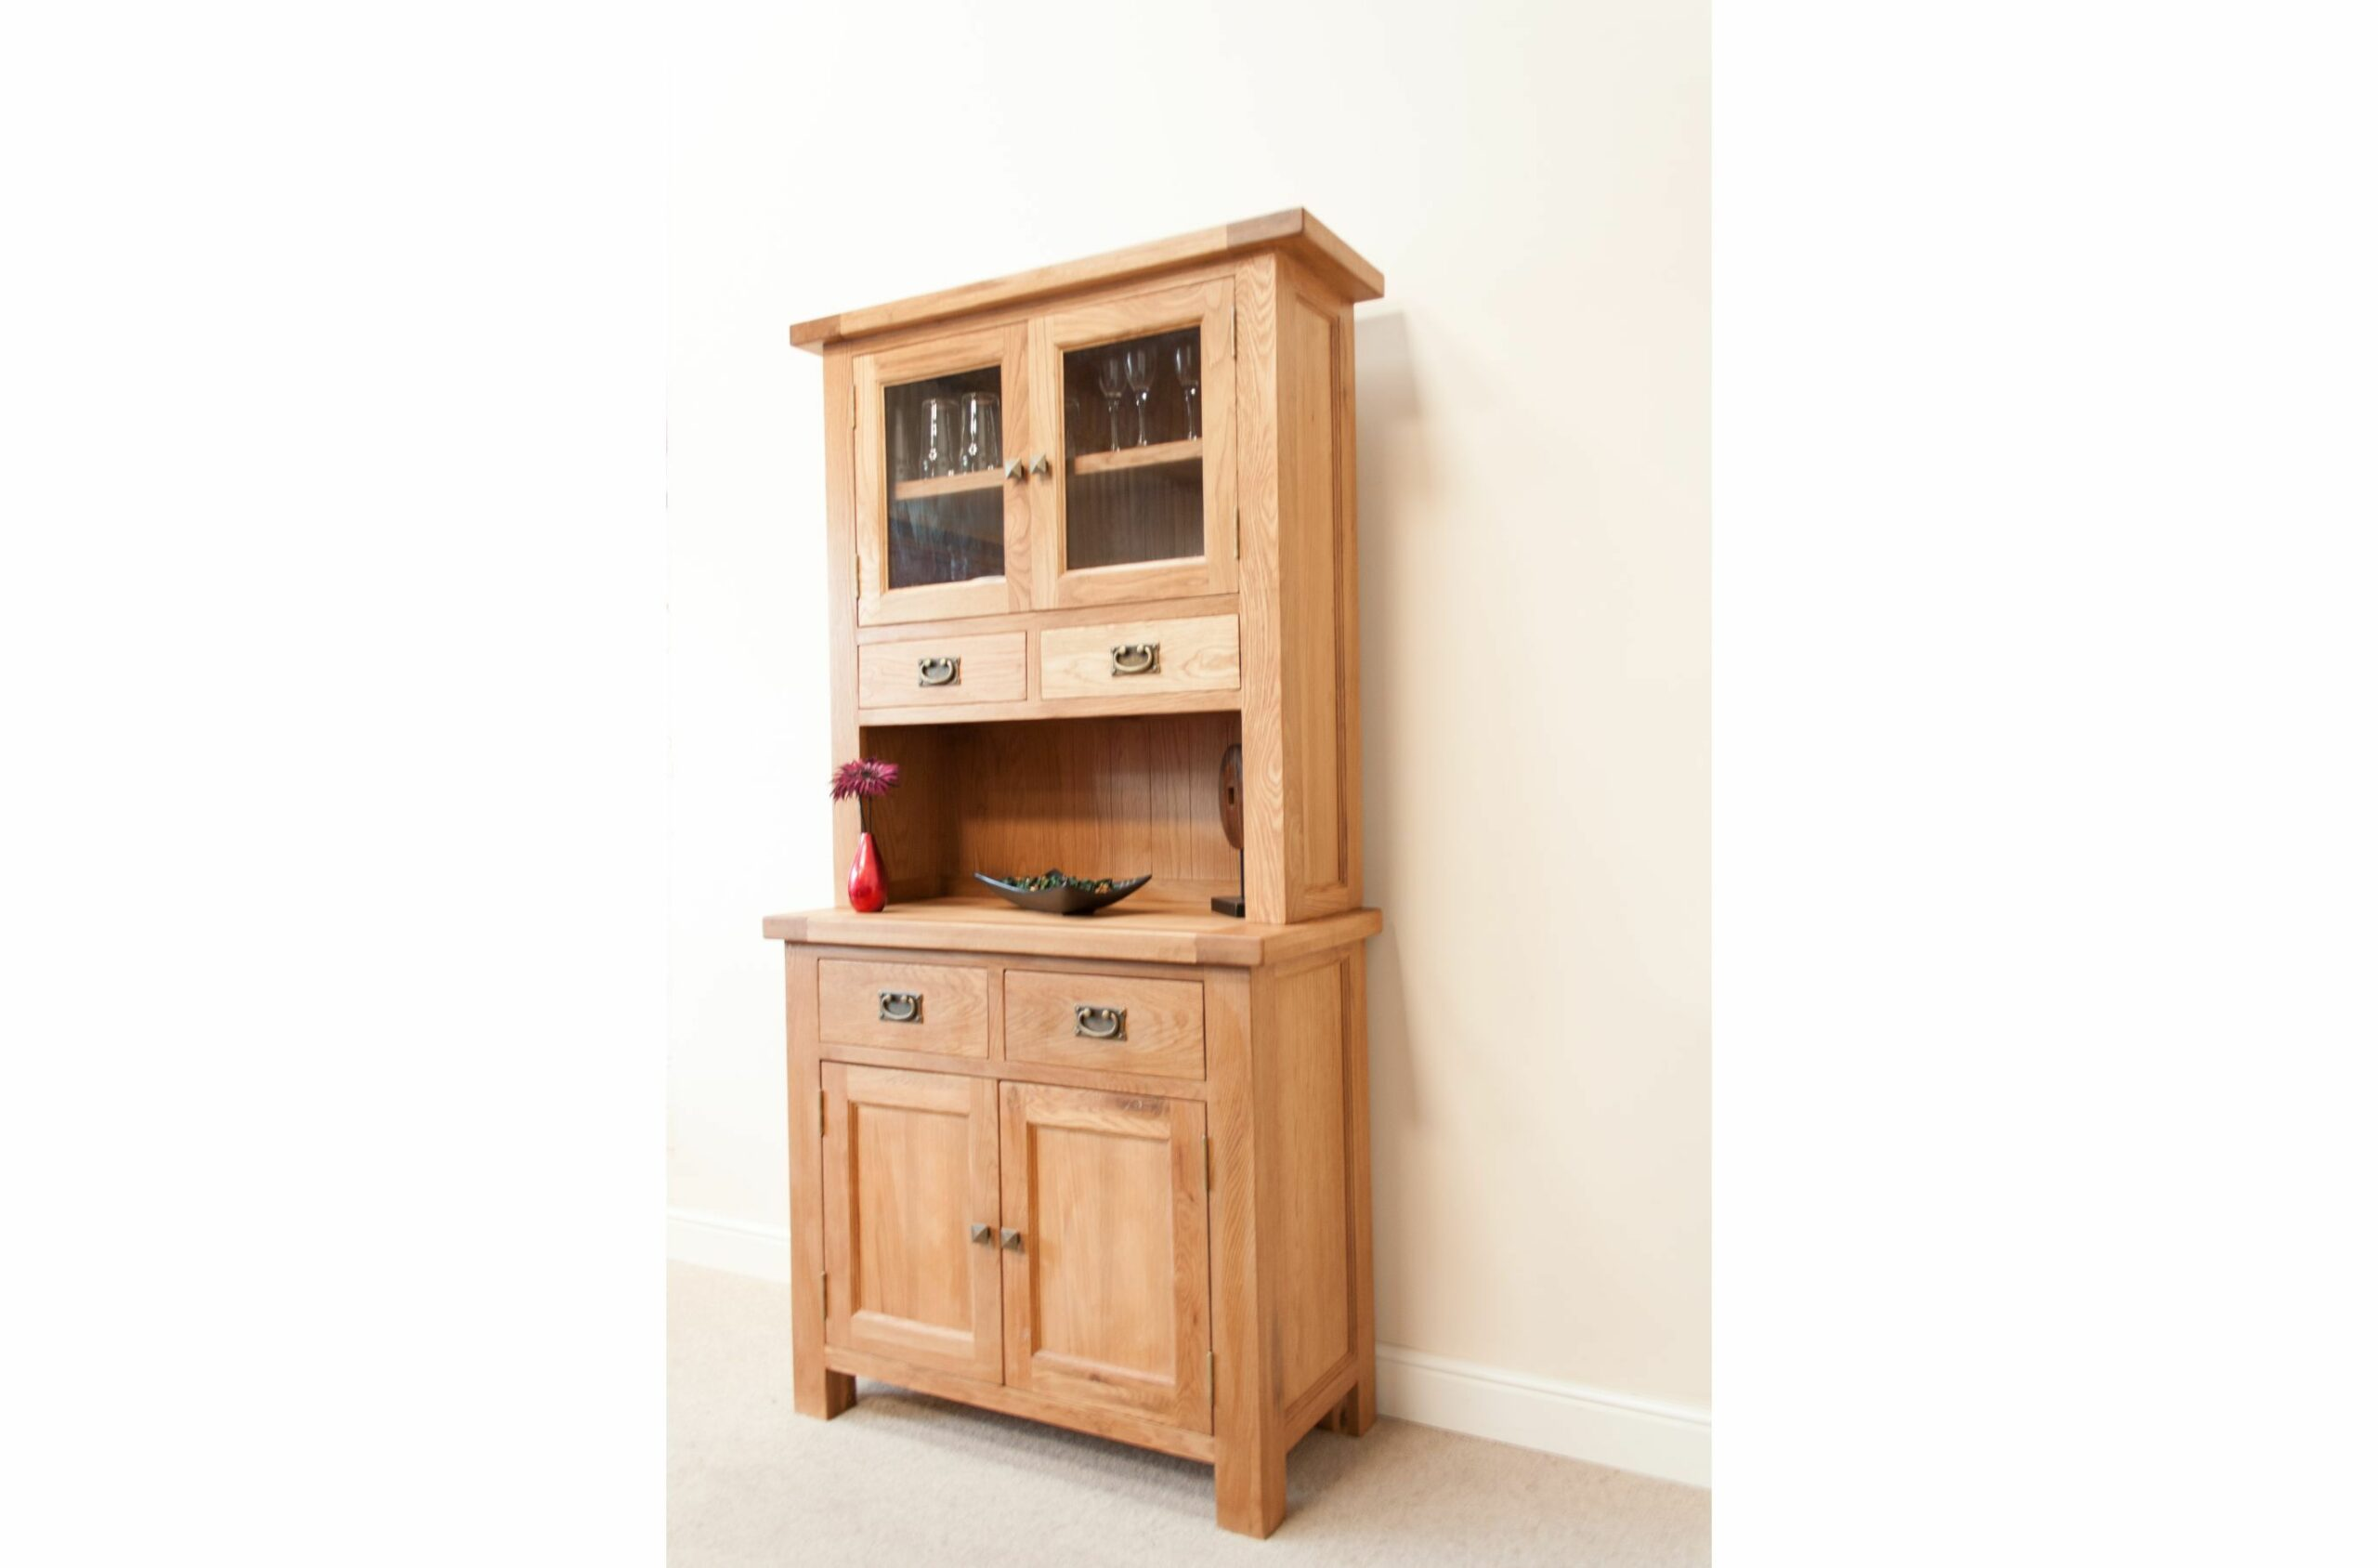 Small Kitchens For Sale Uk